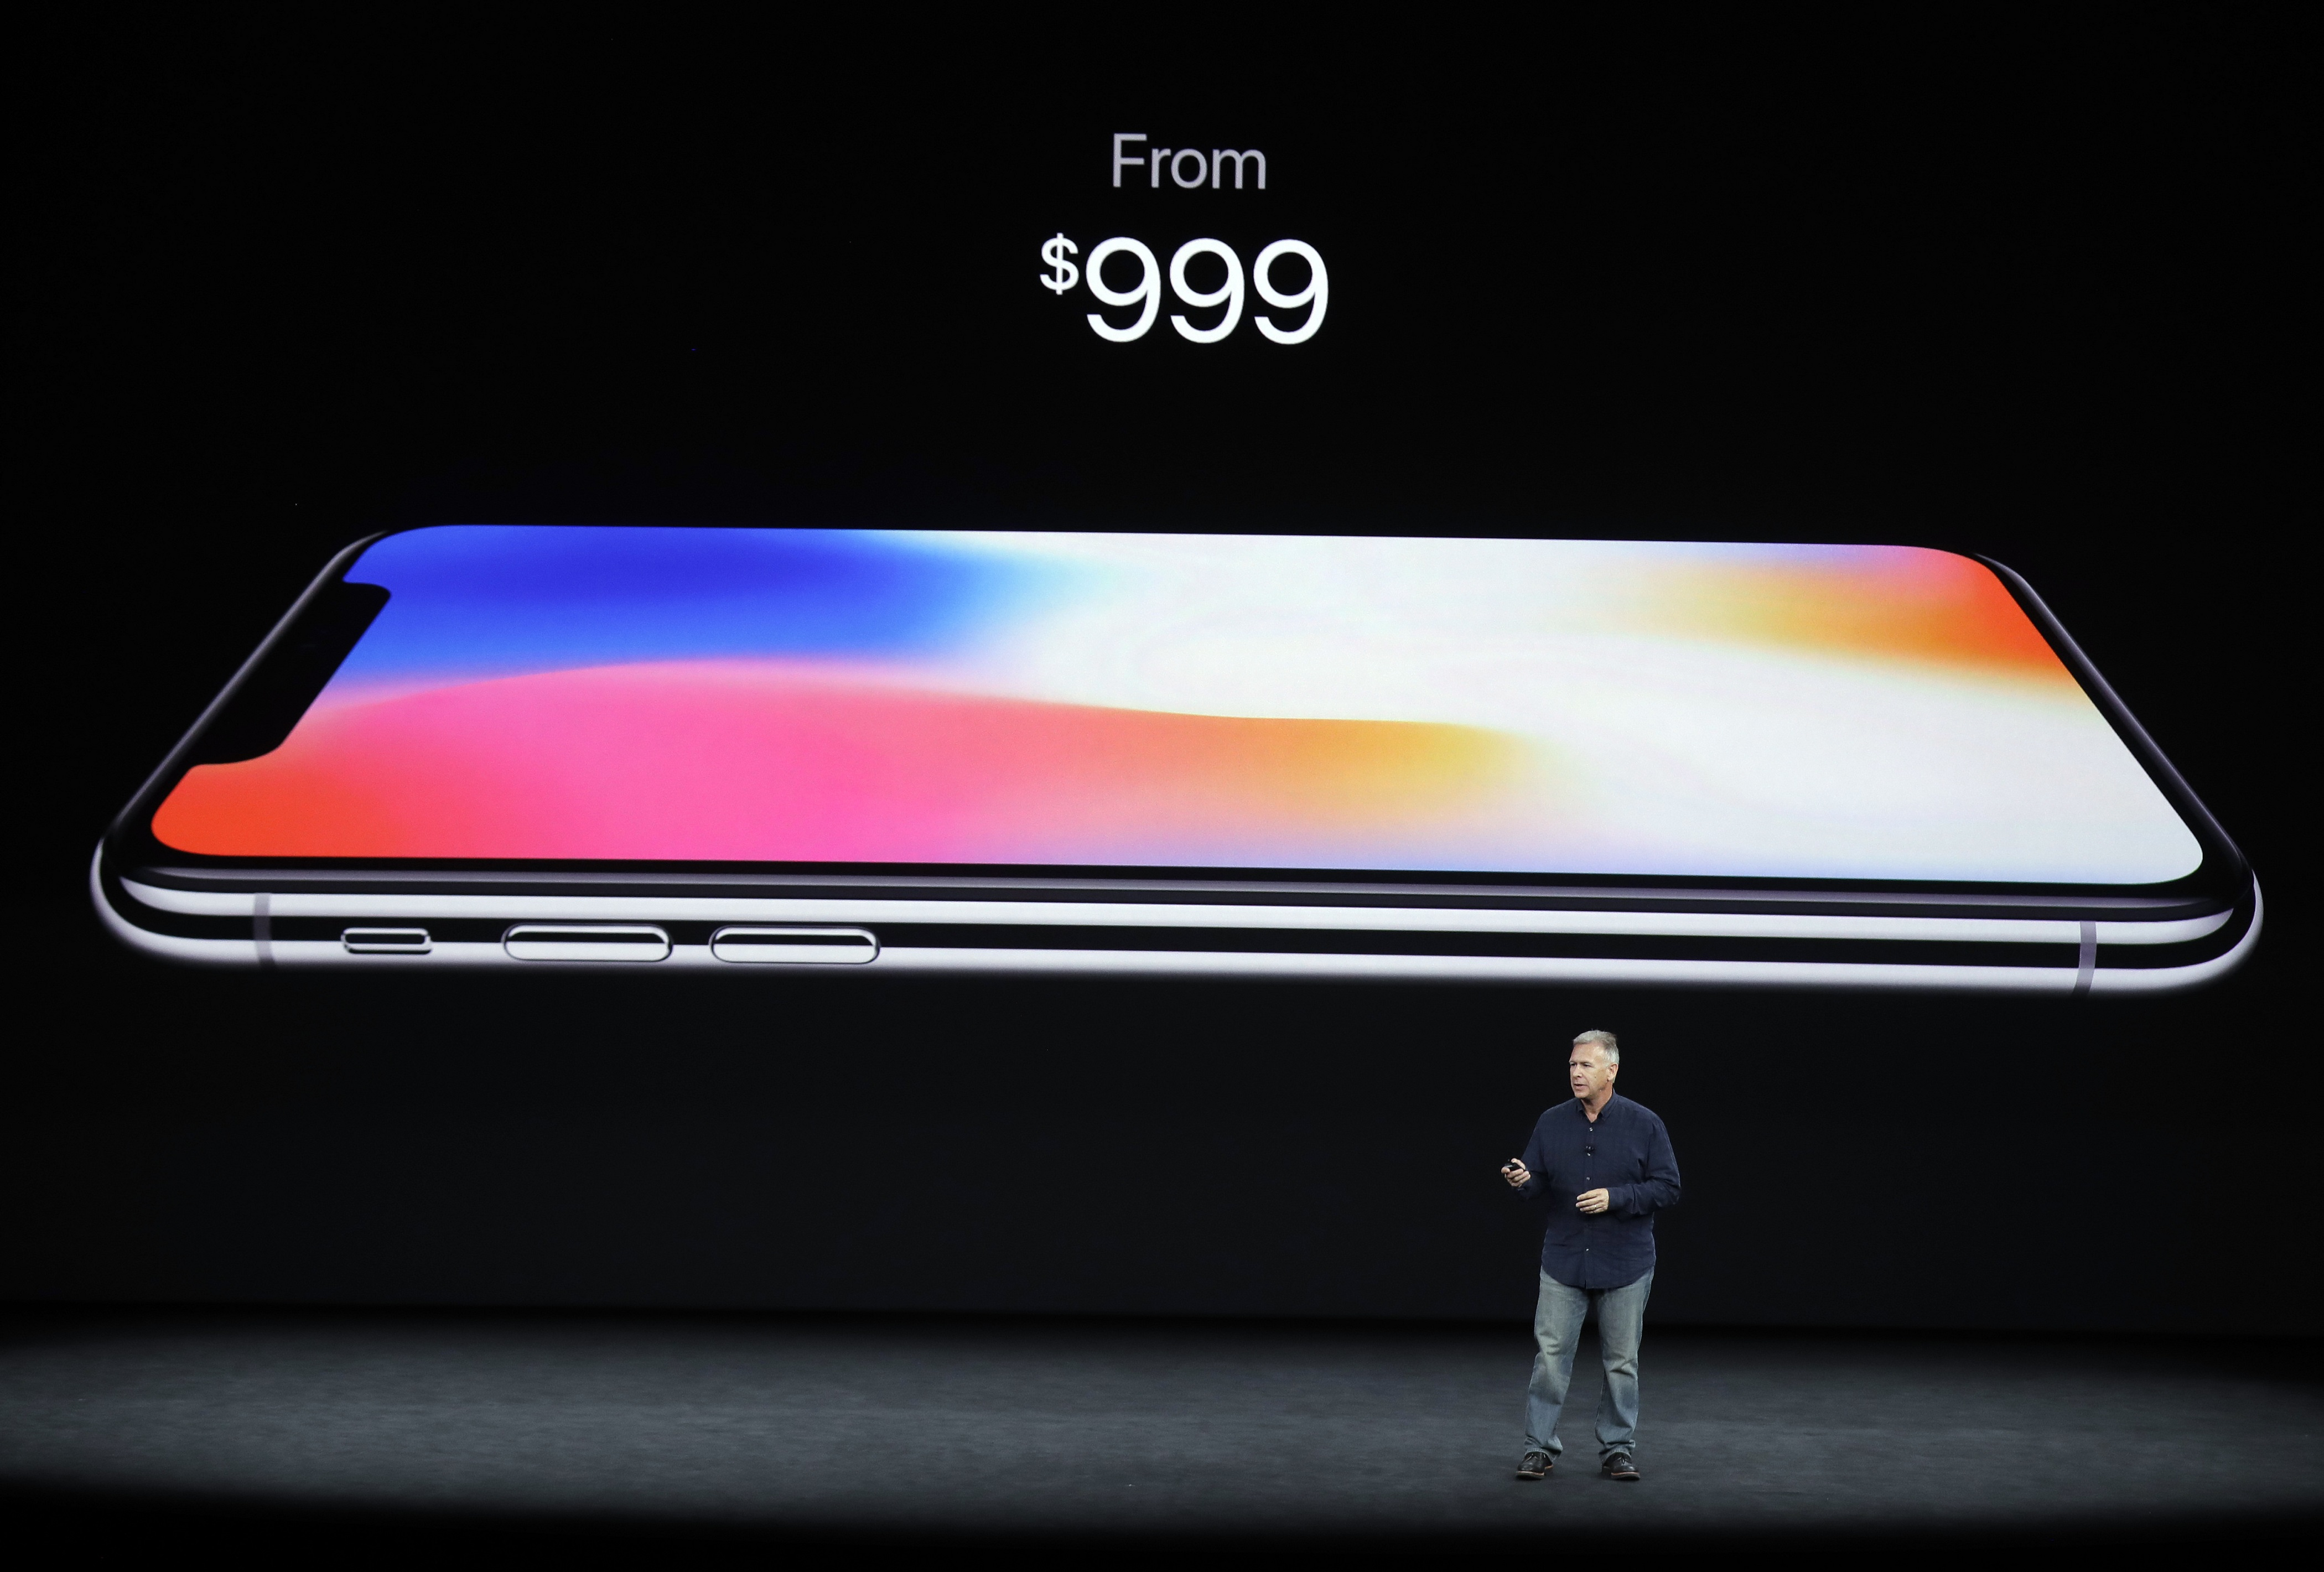 iPhone X with price